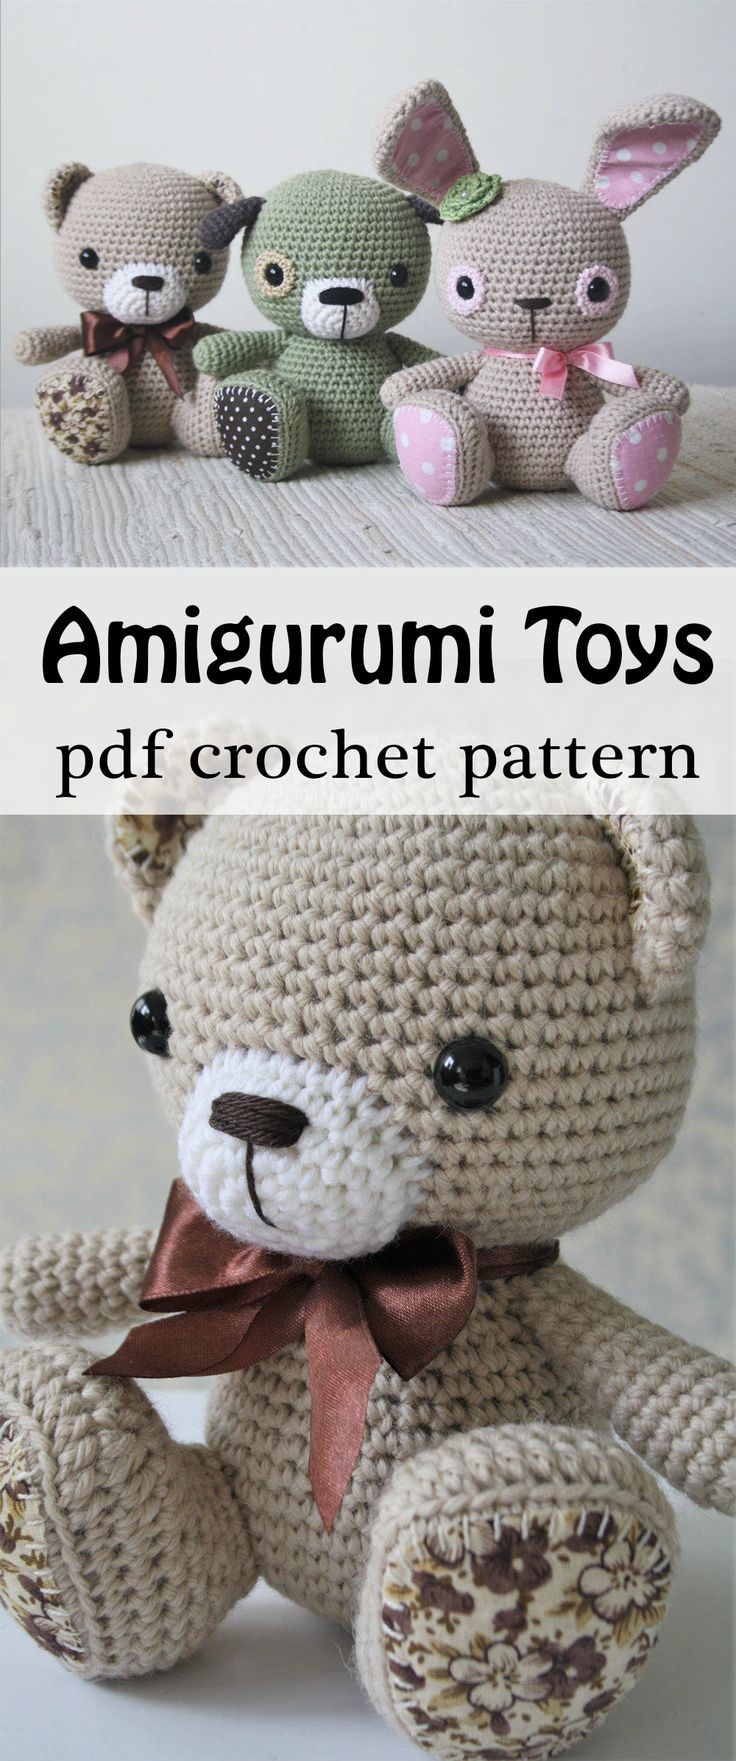 How adorable are these little crochet toys! I think amigurumi toys make a super cute and original baby shower gift because they are unique and handmade. And you can totally just choose the colors whether you're making it for a boy or girl. I love it! This PDF pattern should be quite easy to follow, perfect for a beginner like me lol! #crochet #amigurumi #toys #bunny #rabbit #babyshower #gift #etsy #ad